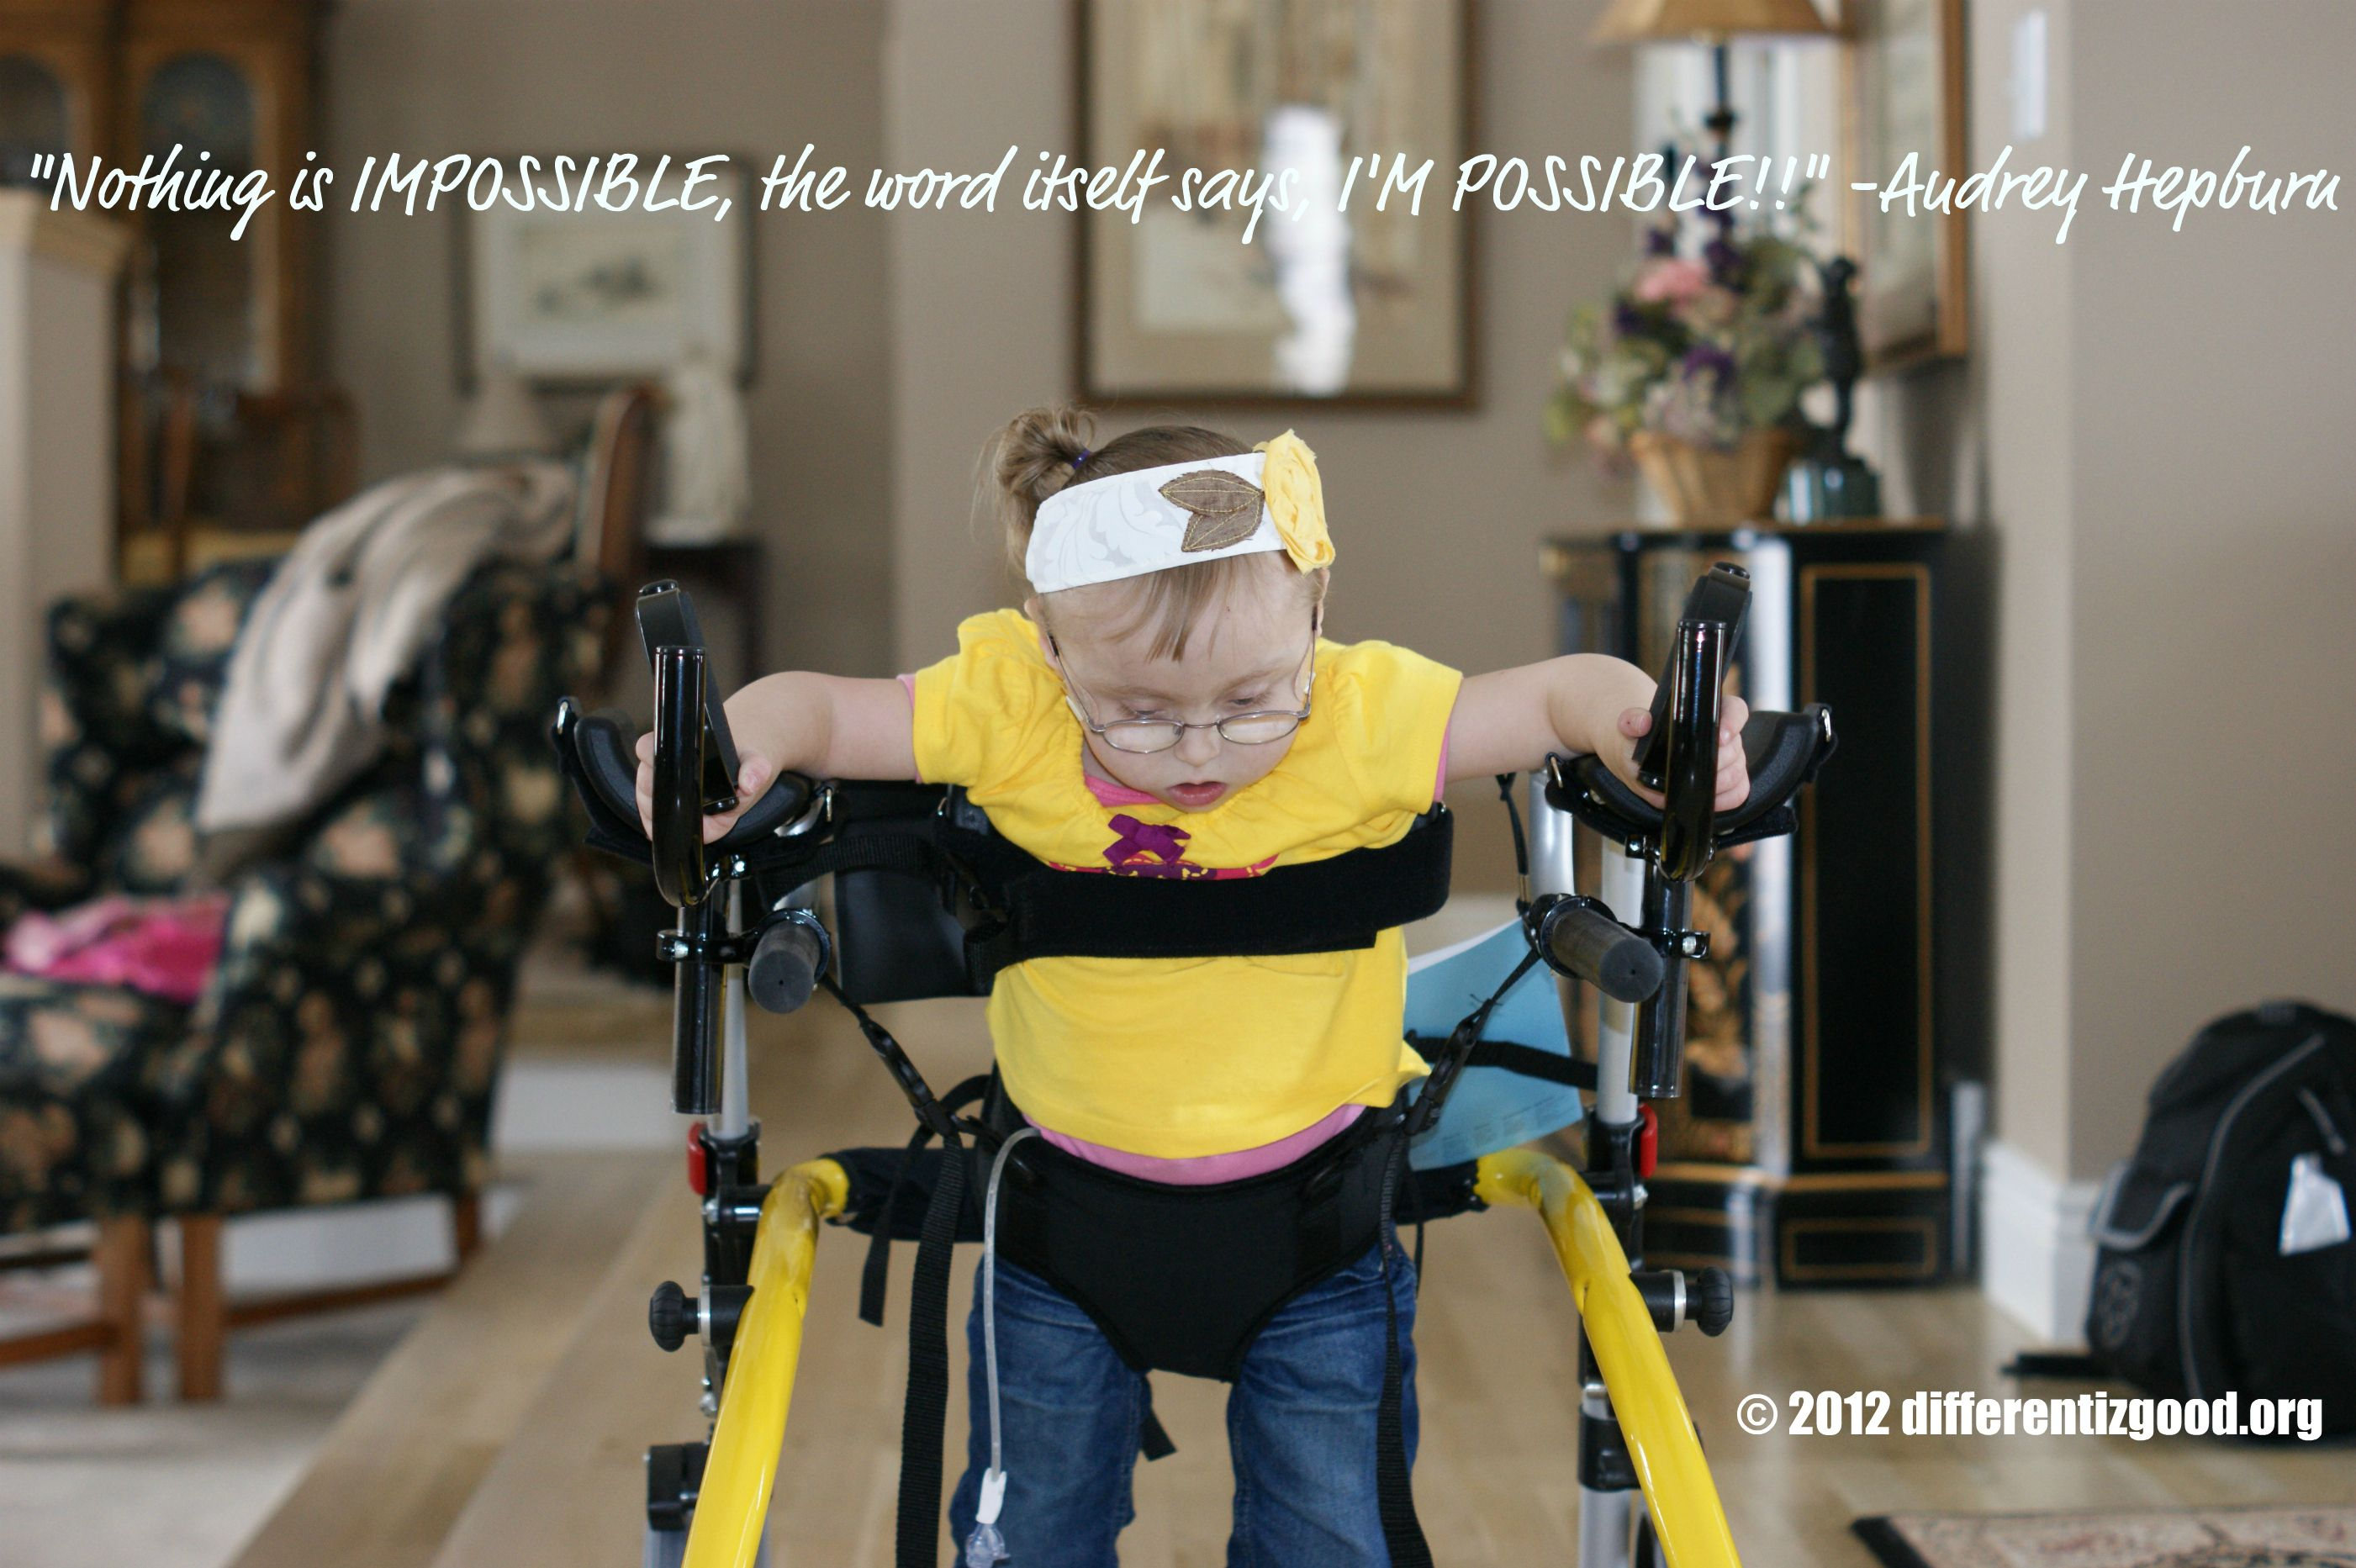 Inspirational Quotes About Loving Children Special Needs Quotes  Share This Email Print Facebook  Quotes